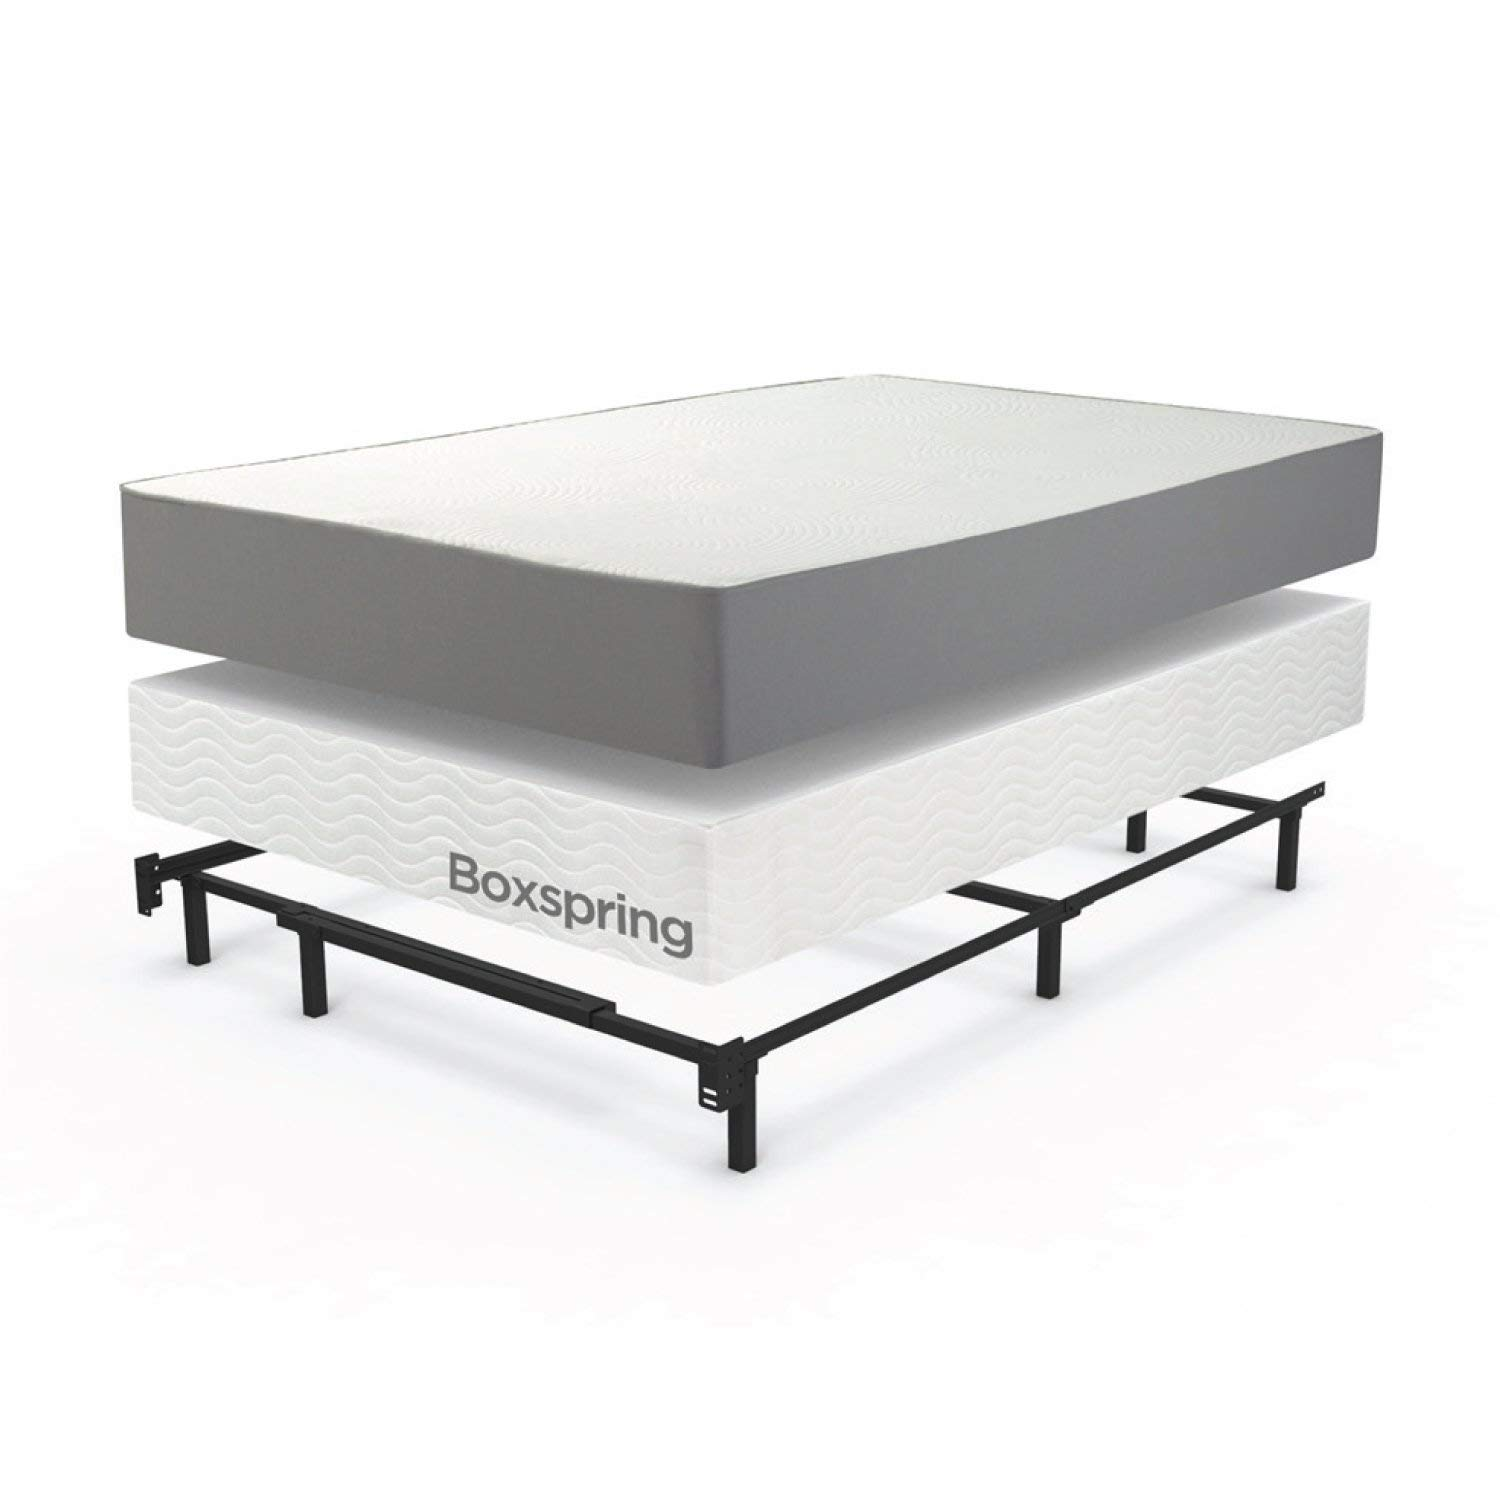 Box Spring bed amazon.com: zinus compack adjustable steel bed frame, for box spring u0026  mattress set, XXLQRLB